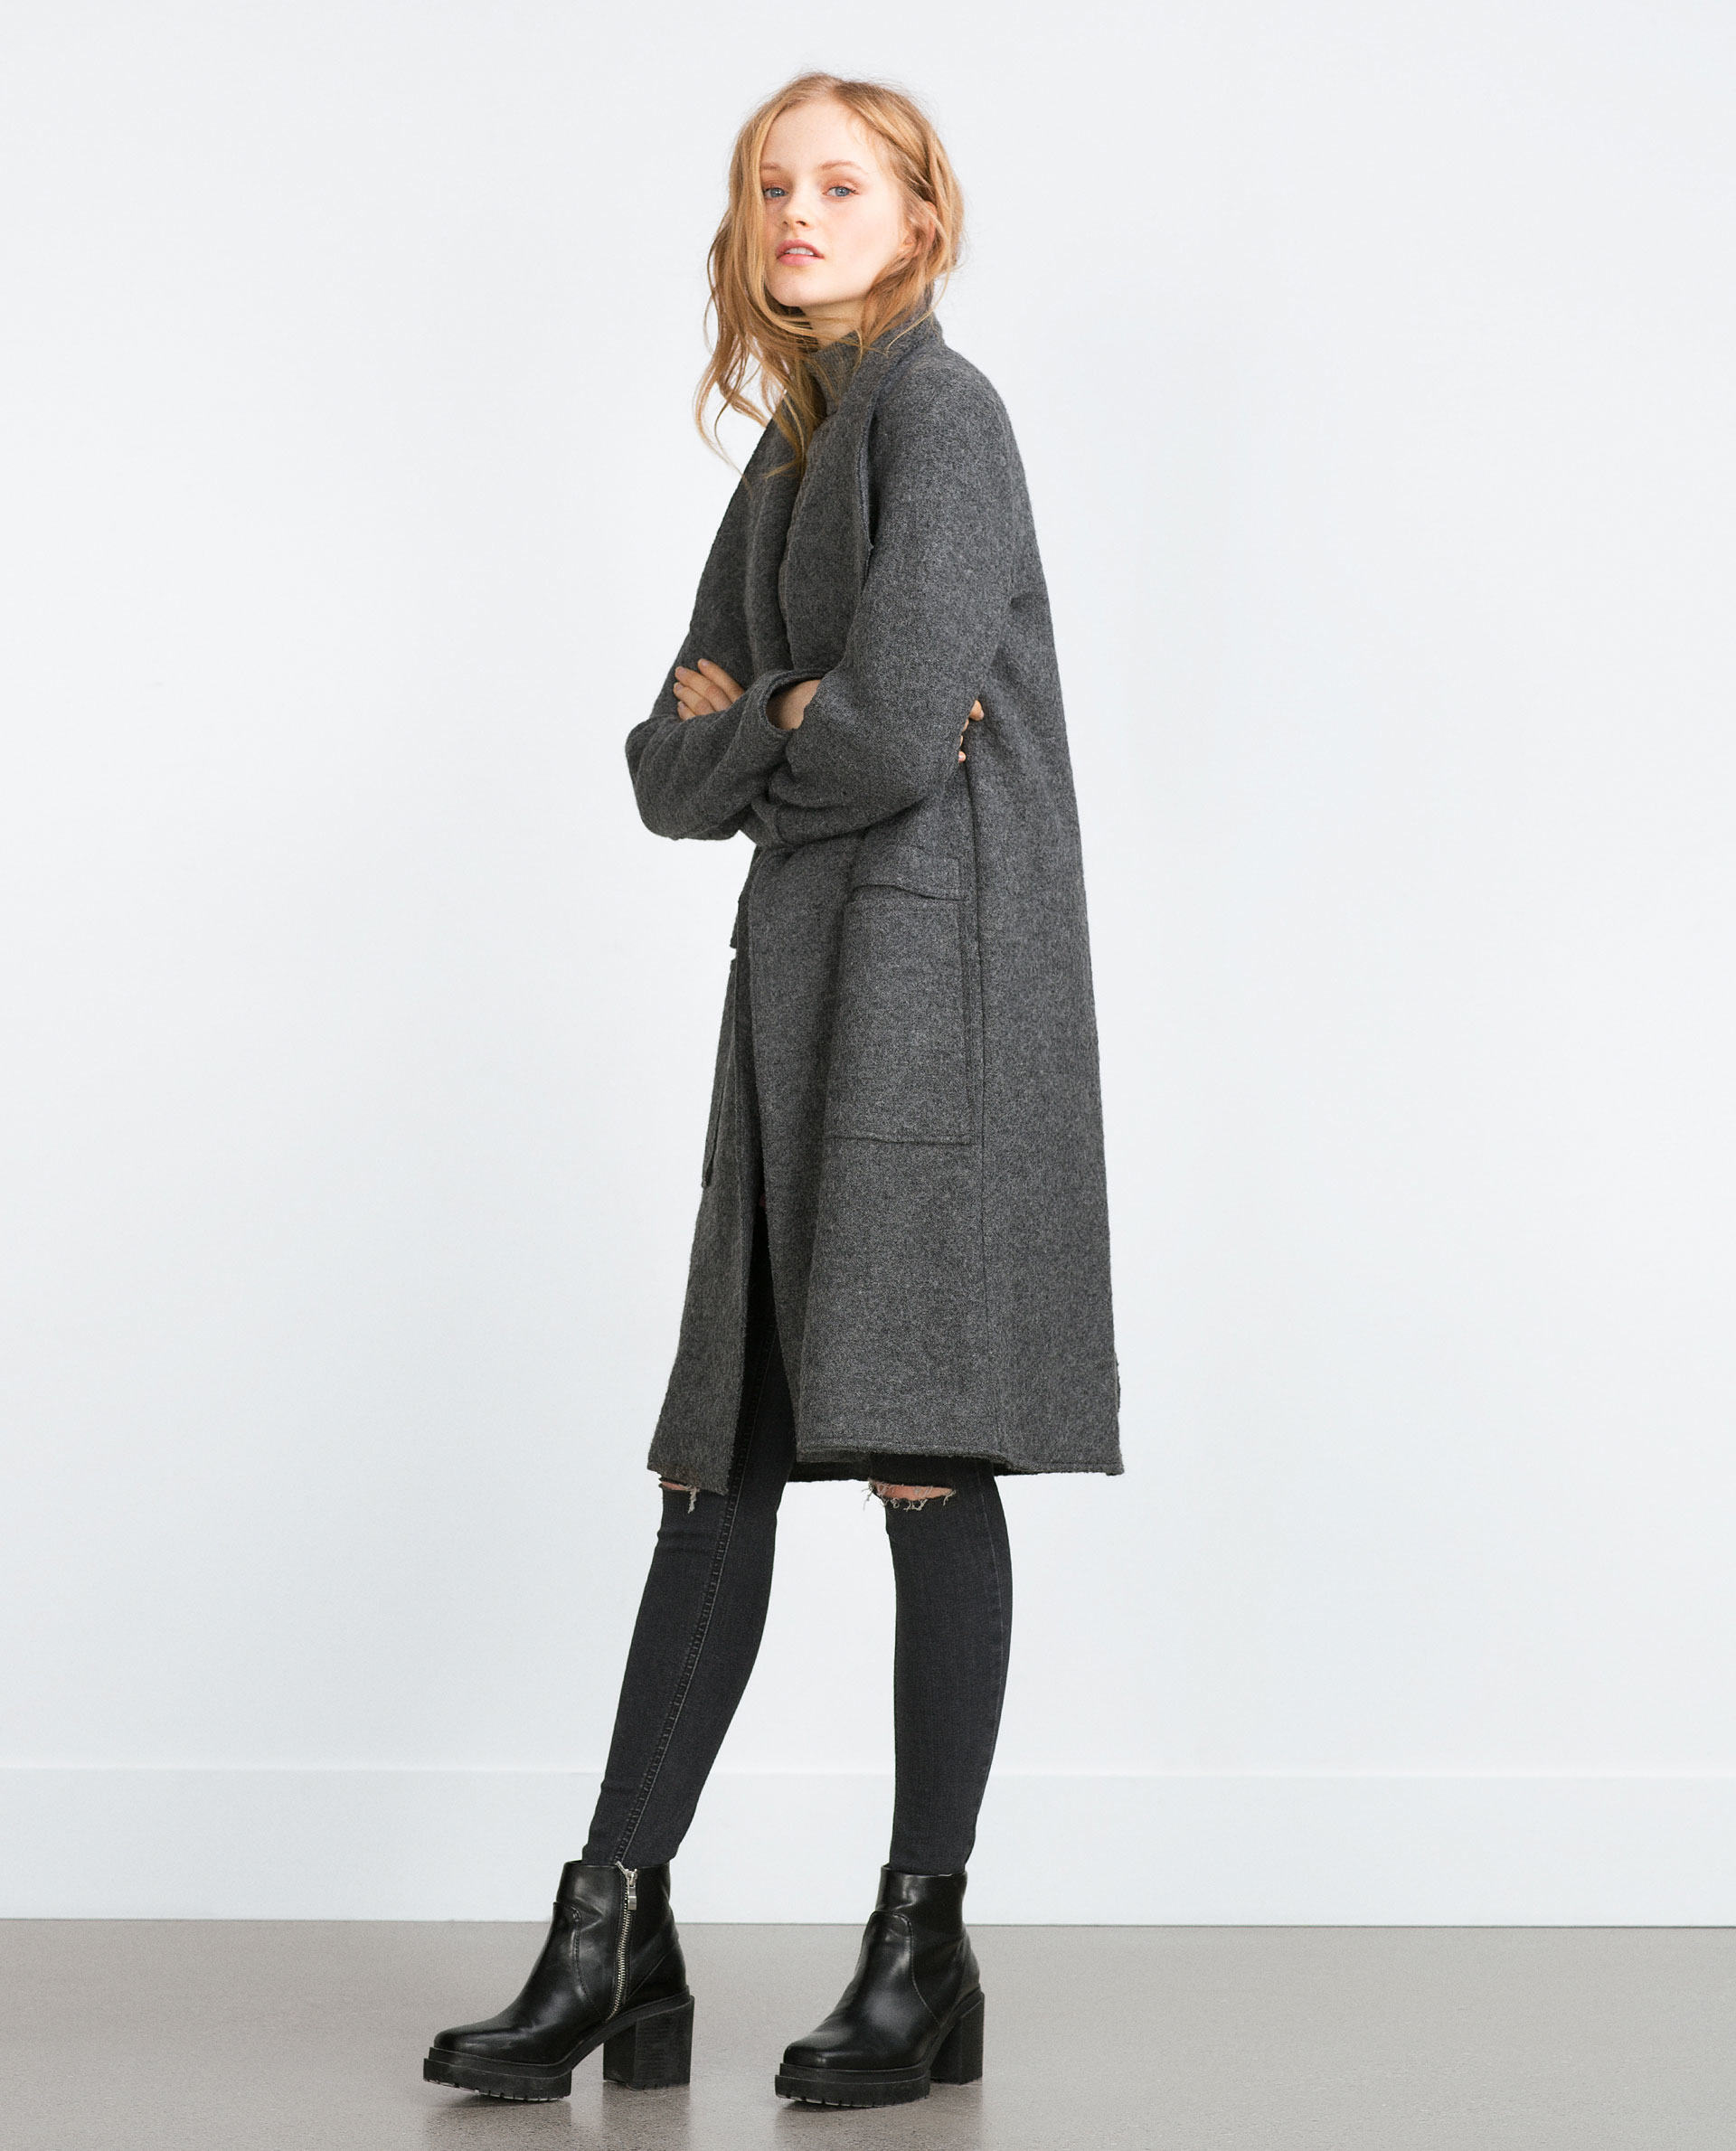 Shop gray wool coat at Neiman Marcus, where you will find free shipping on the latest in fashion from top designers.